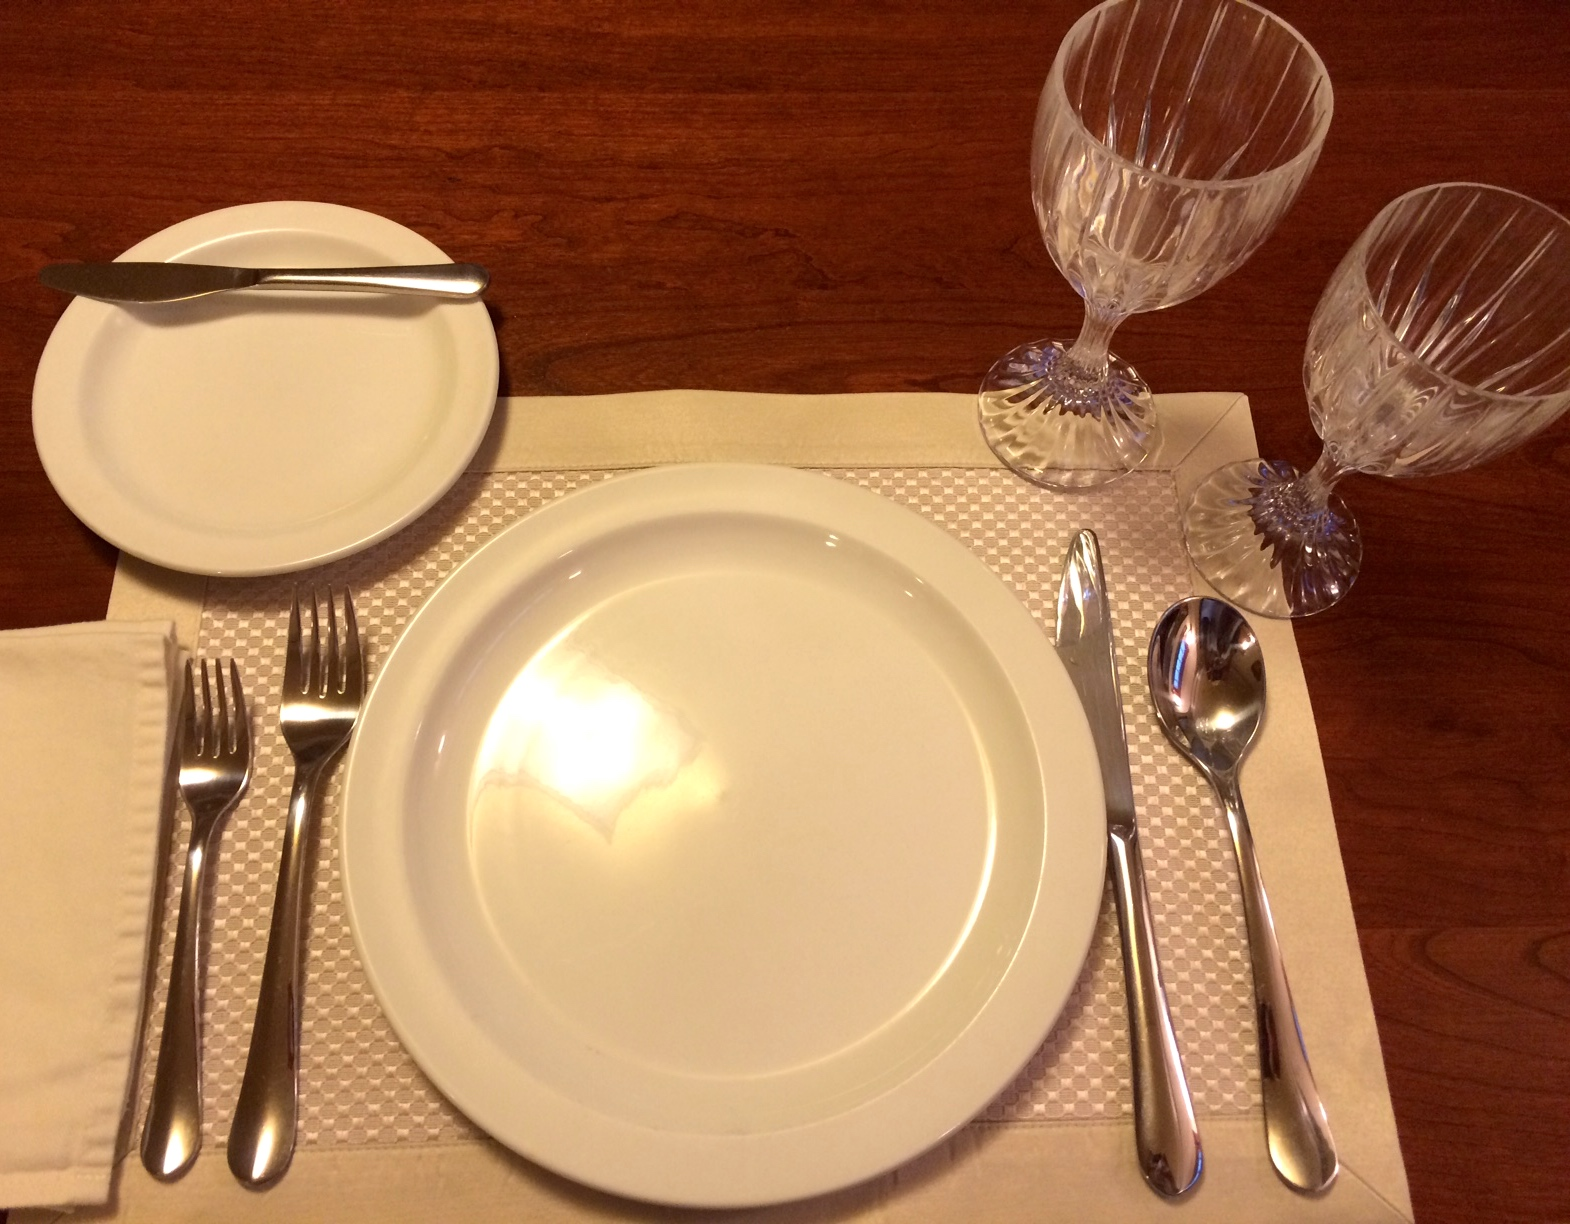 Three-course Place Setting